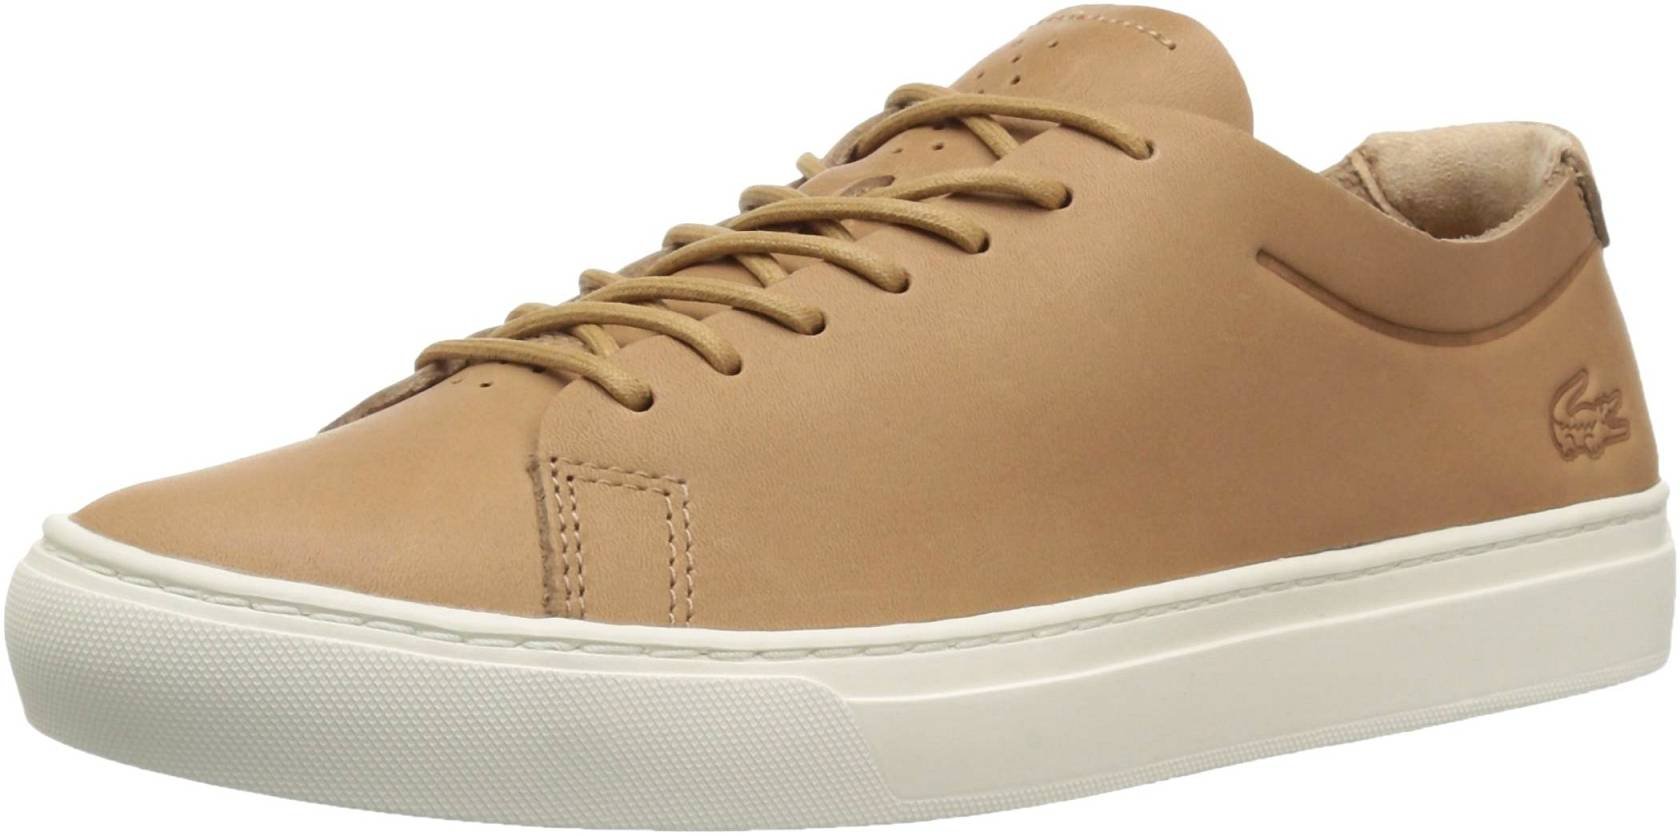 L.12.12 Unlined Leather Trainers color